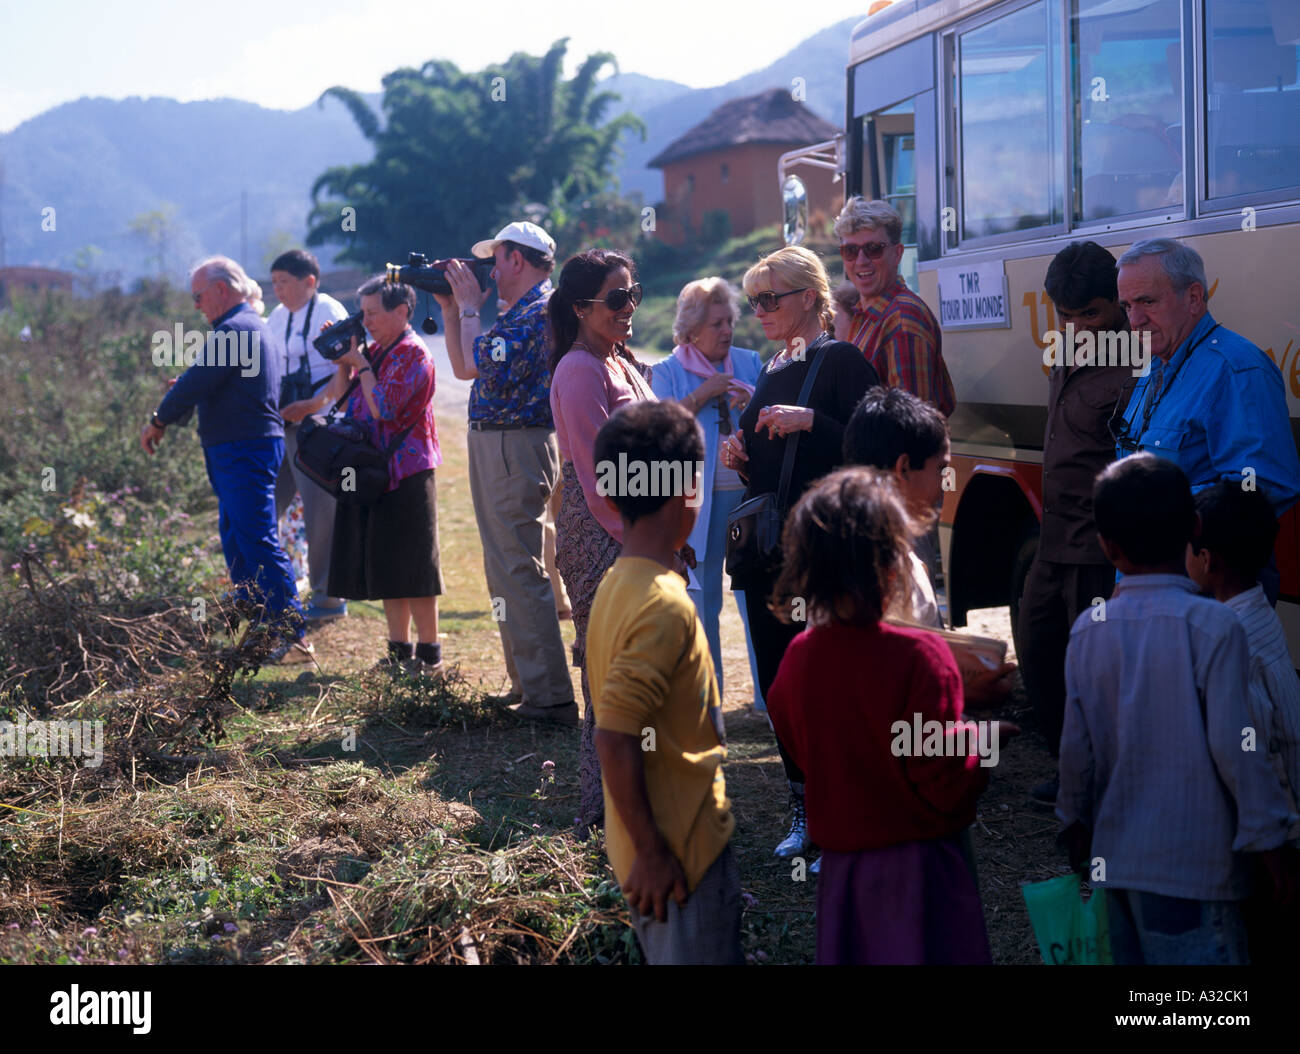 Effect of affluent tourism on children begging in developing country Nepal Asia - Stock Image